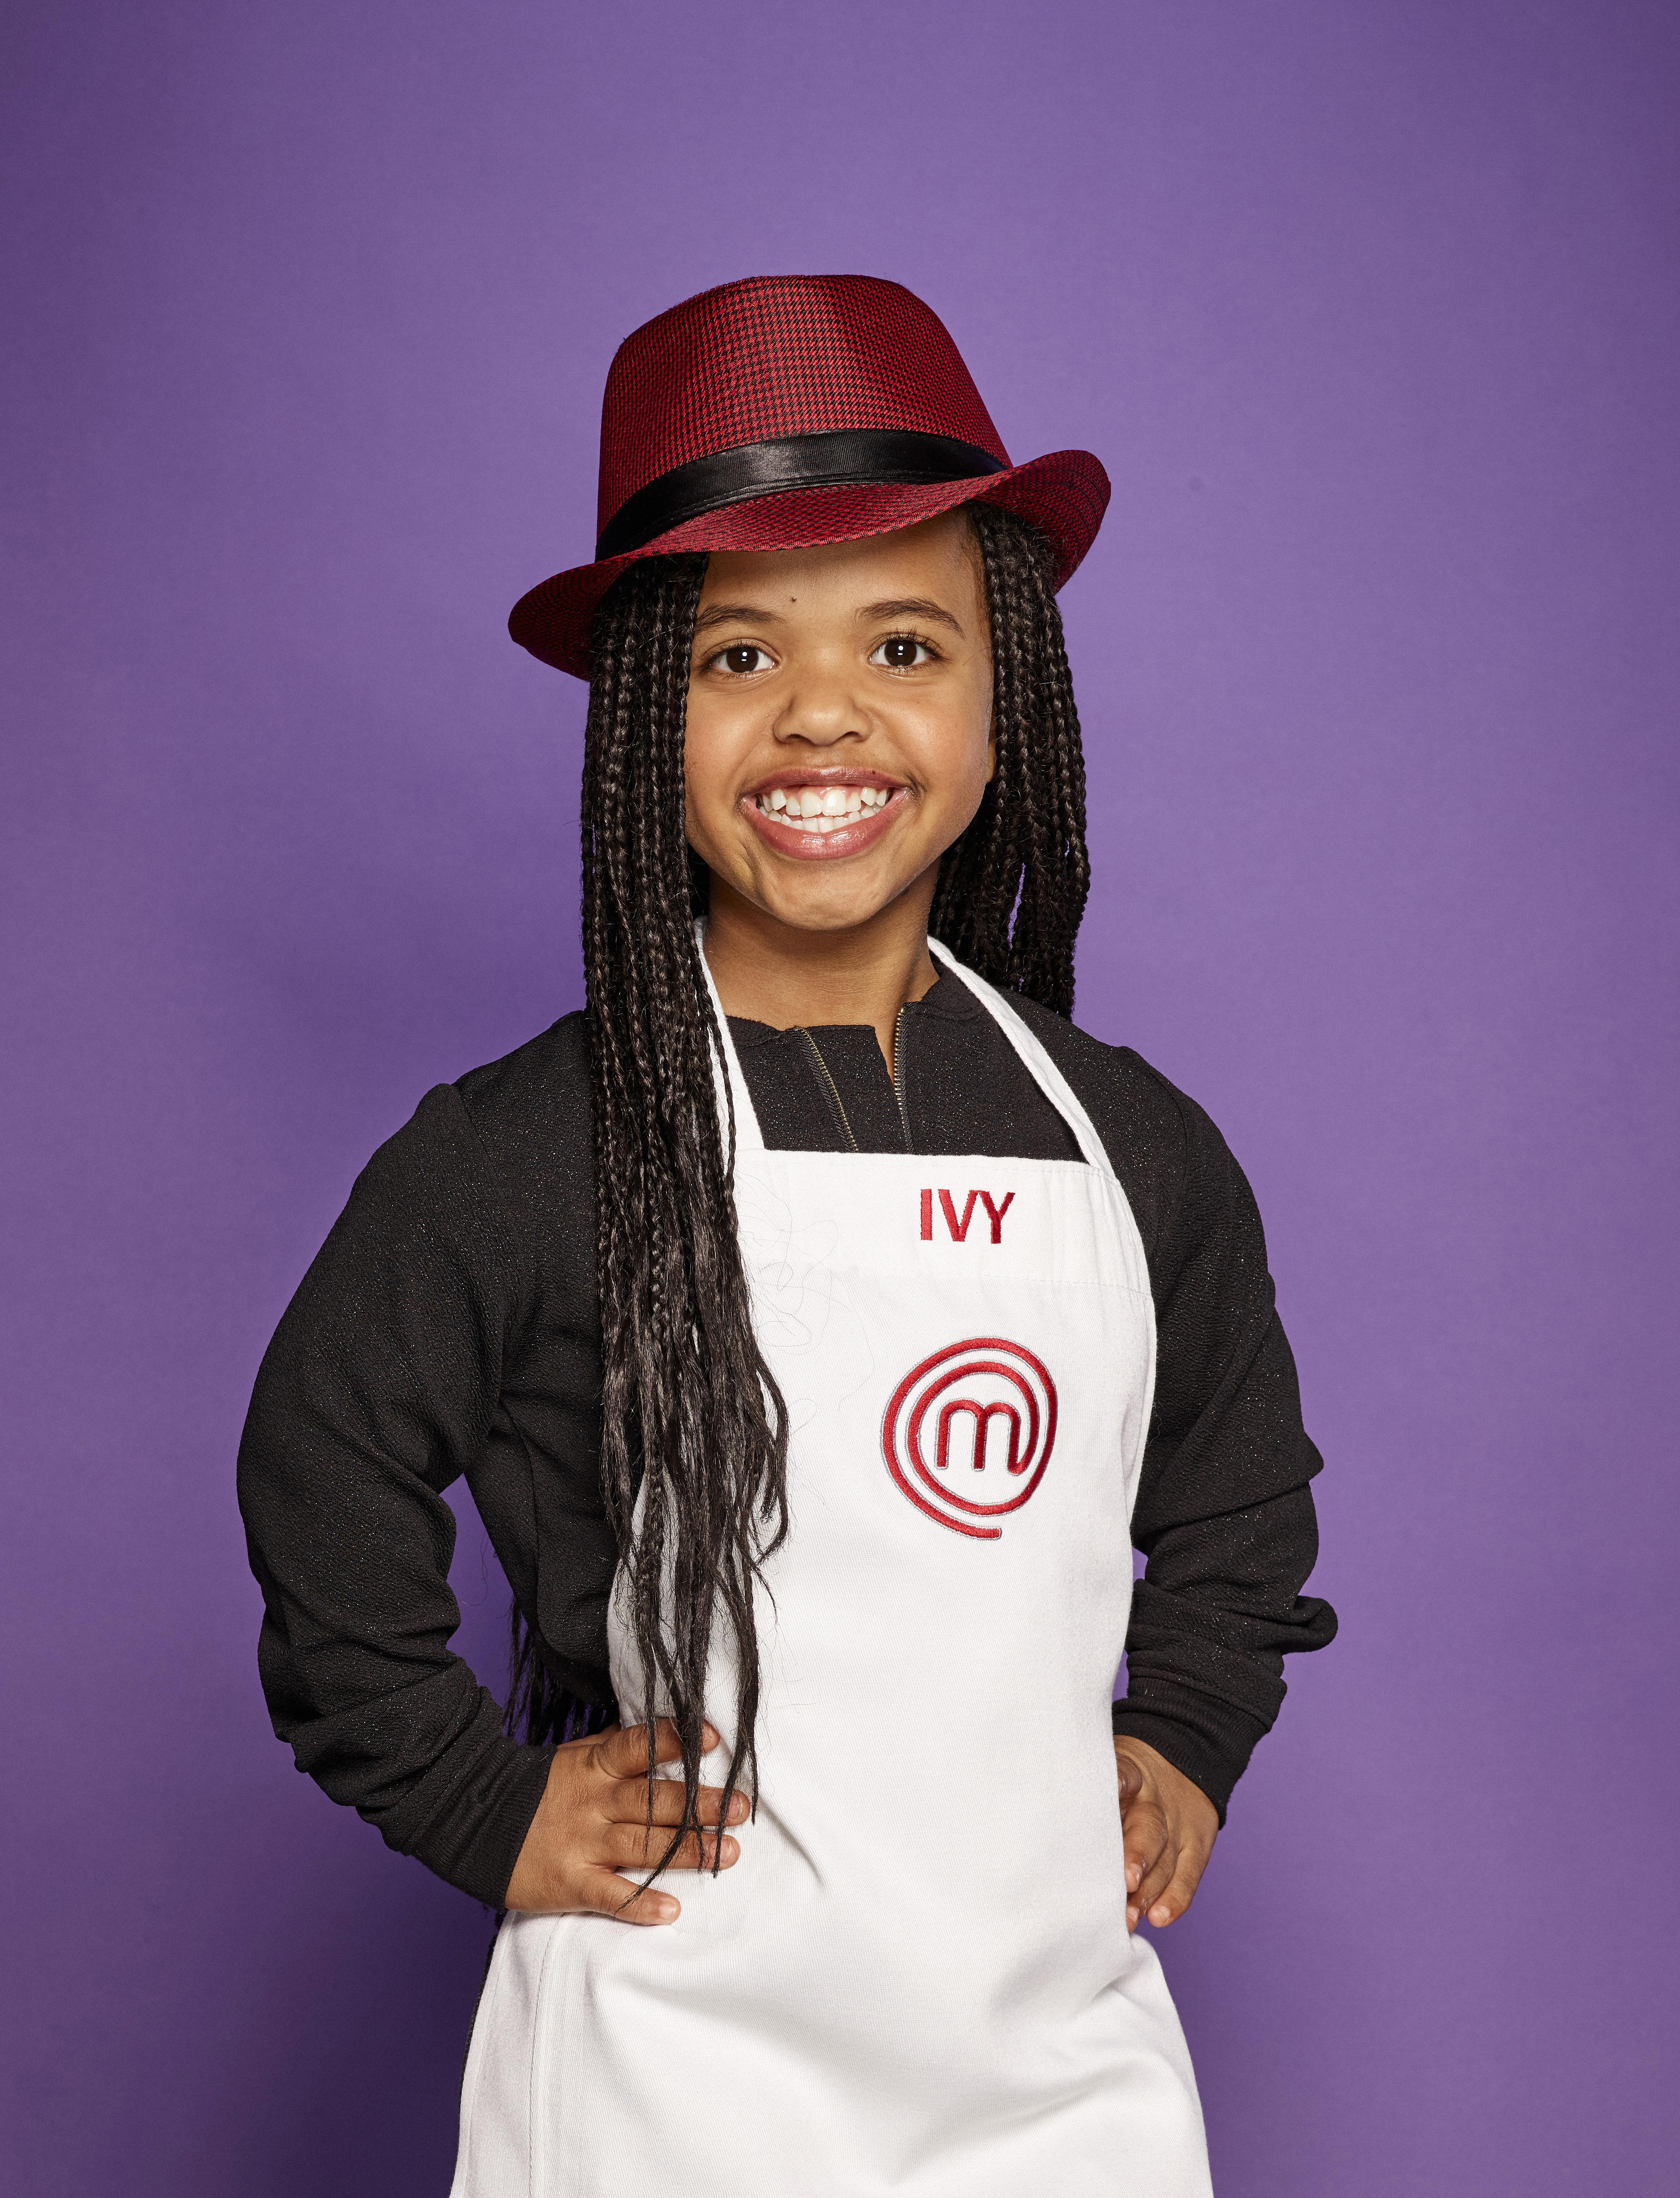 """Little Chef Ivy"""" Continues to Break Barriers as MasterChef"""